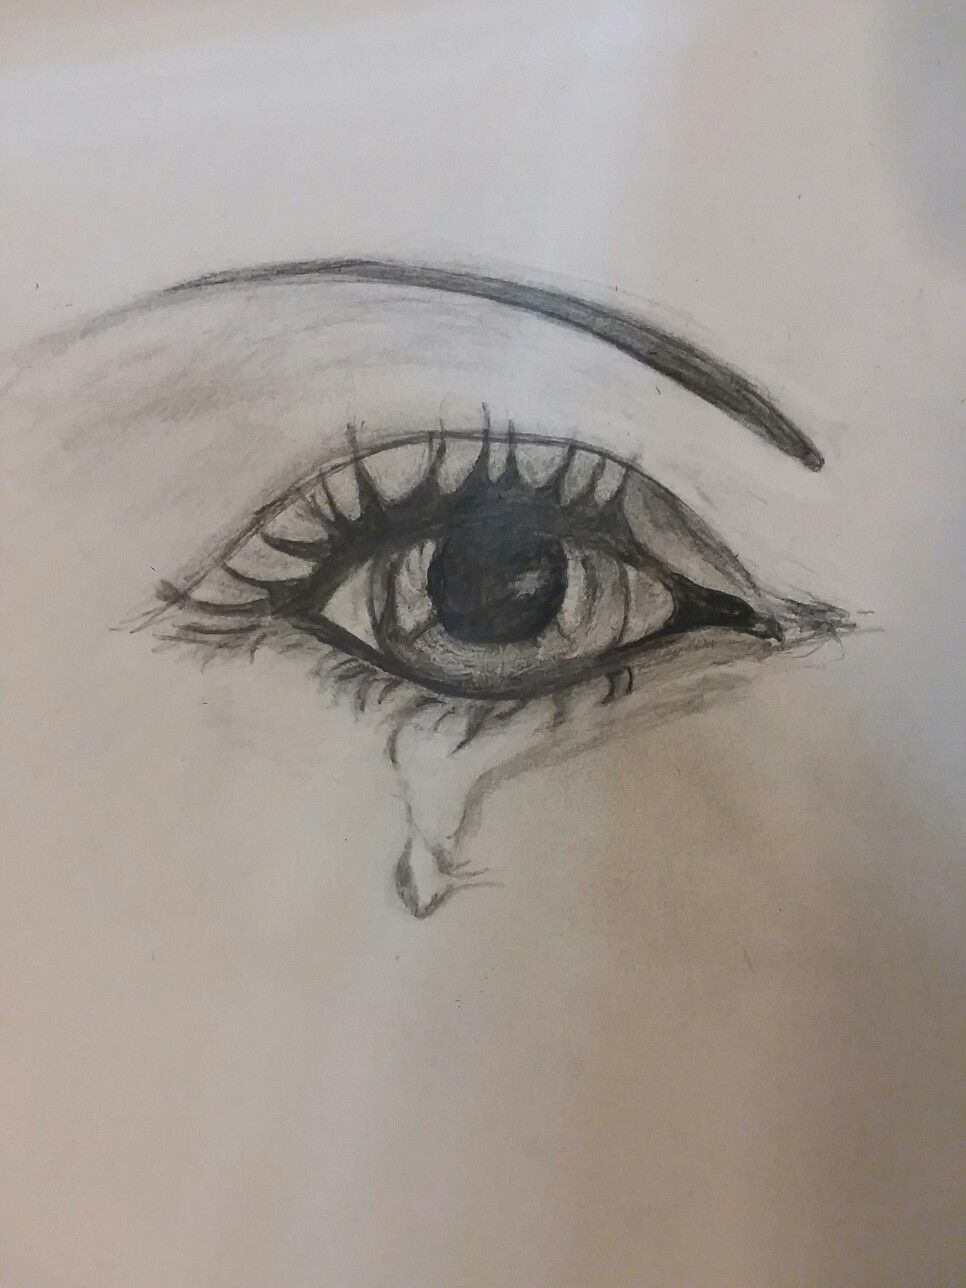 Pencil drawing eyes charcoal shading eyelashes tears by michael kriticos